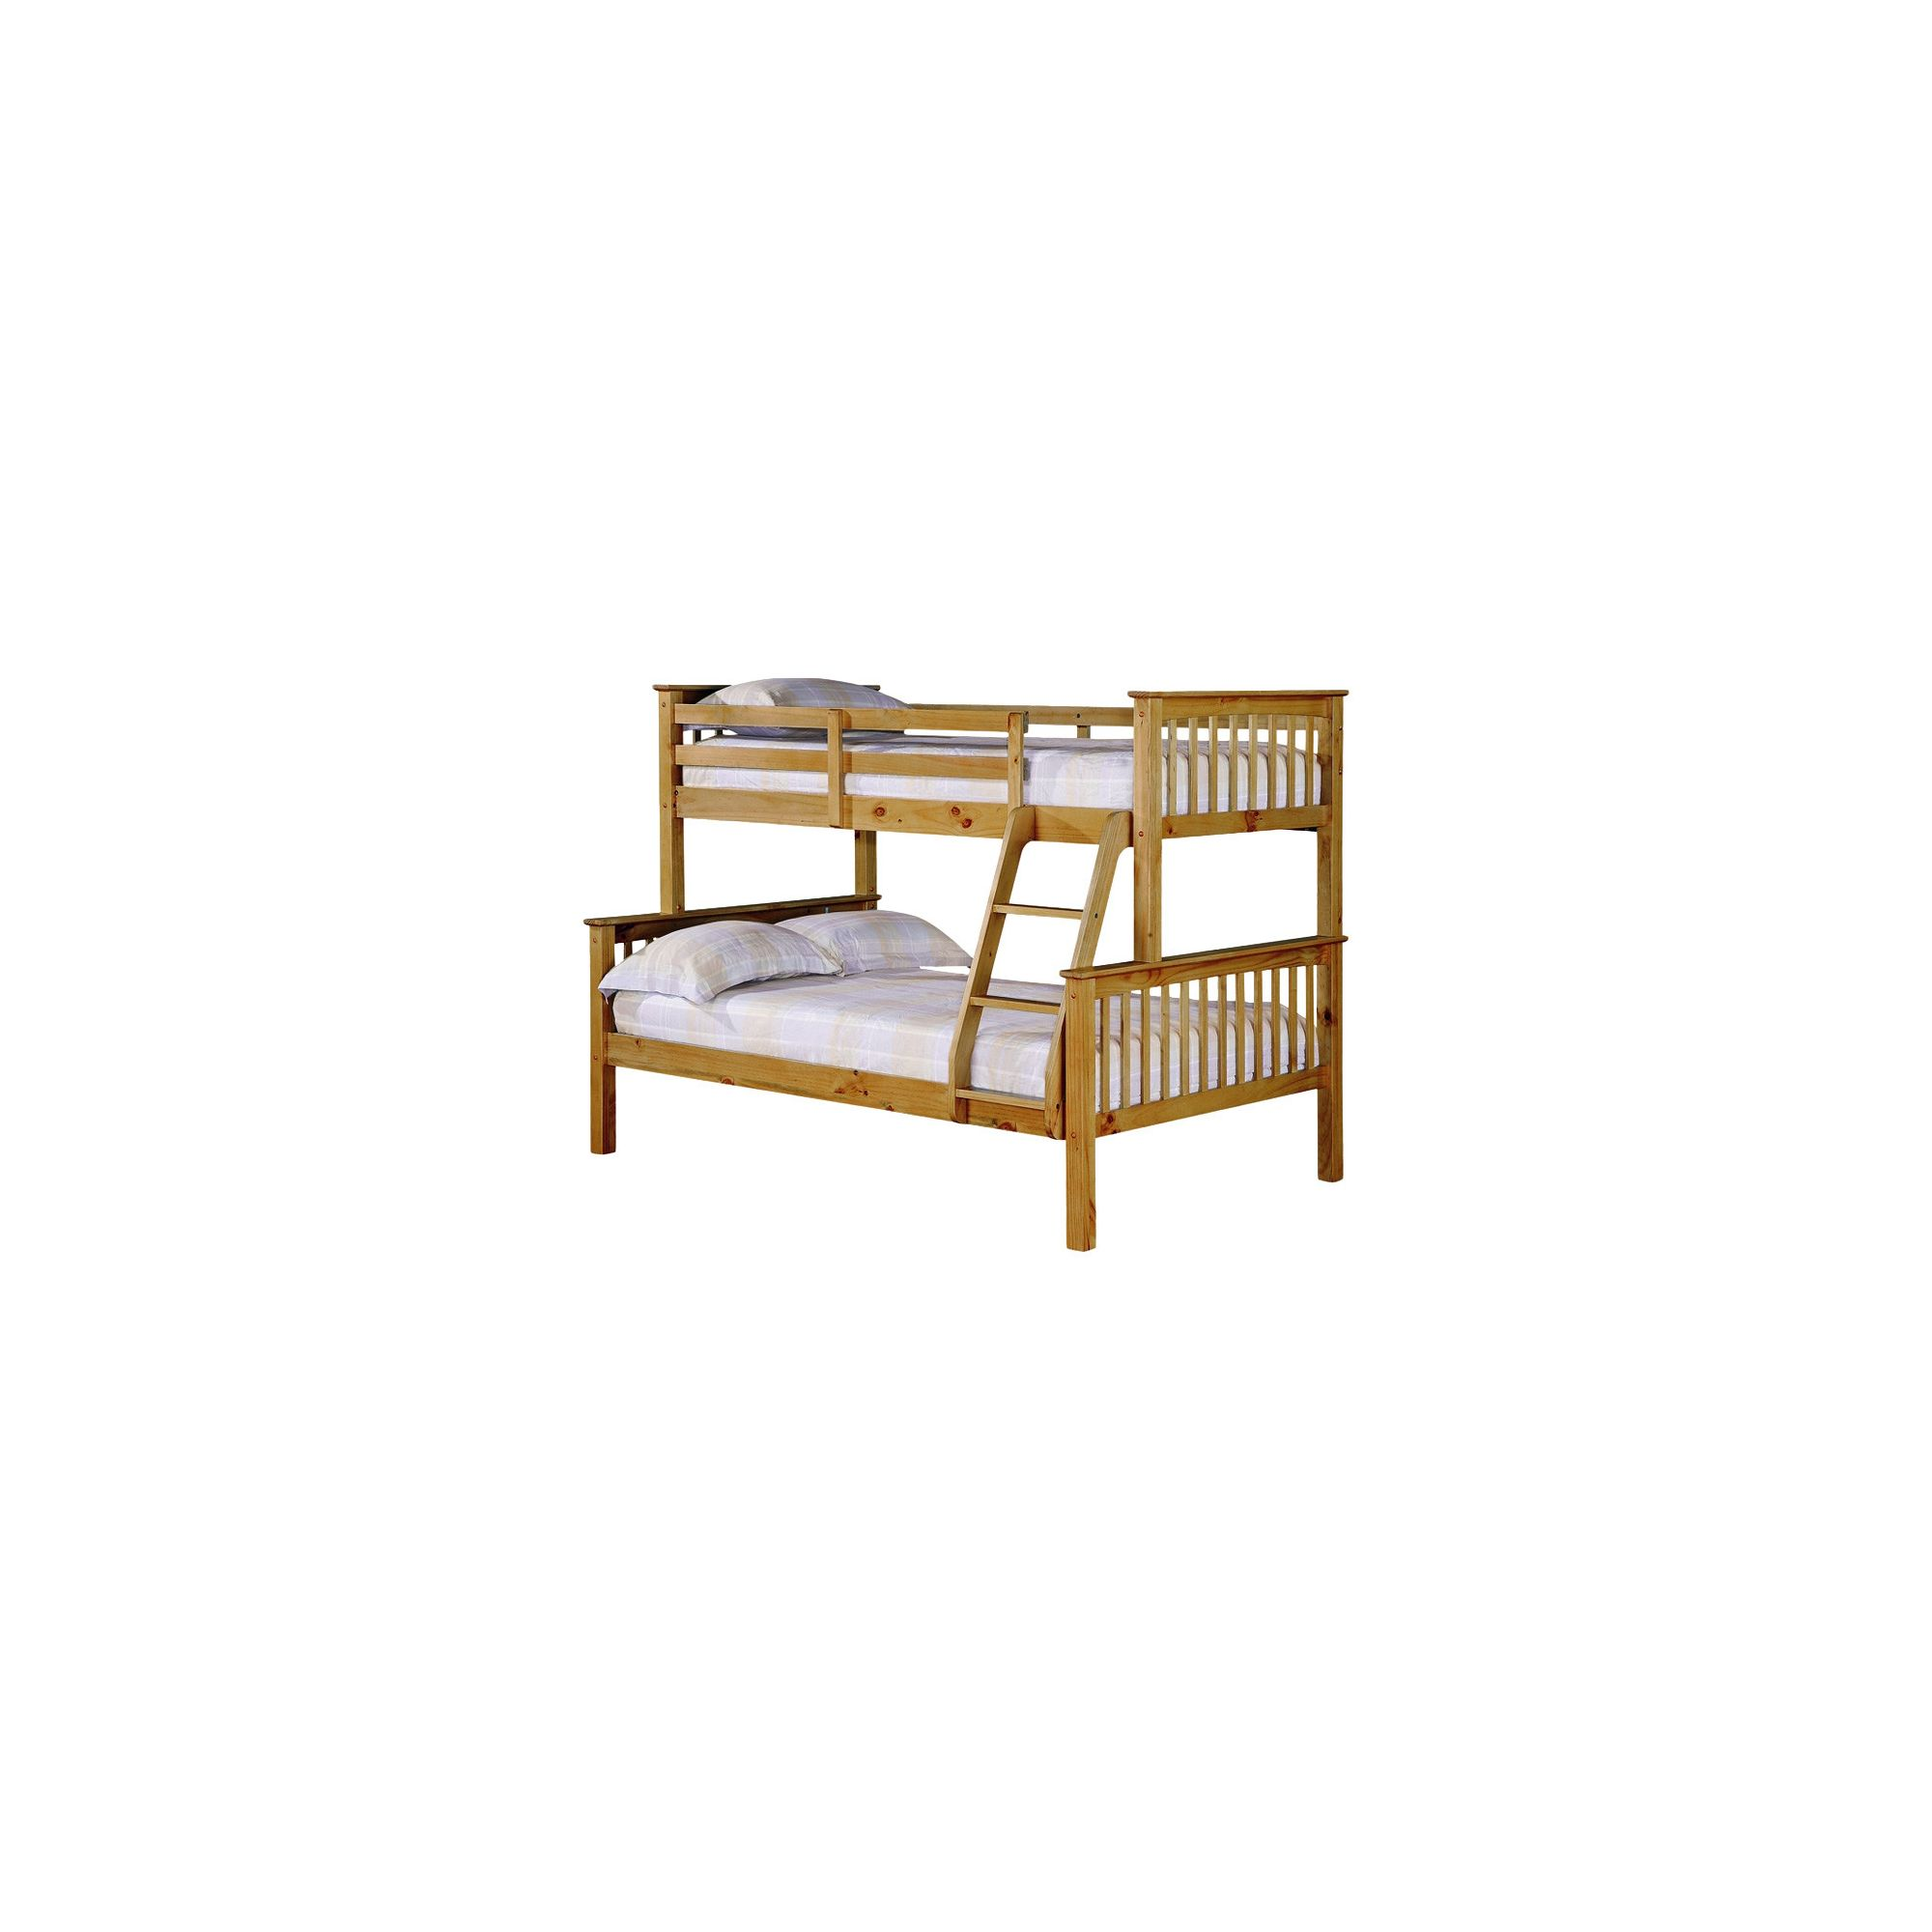 Home and garden furniture mika twin bunk bed frame for Furniture zone beds